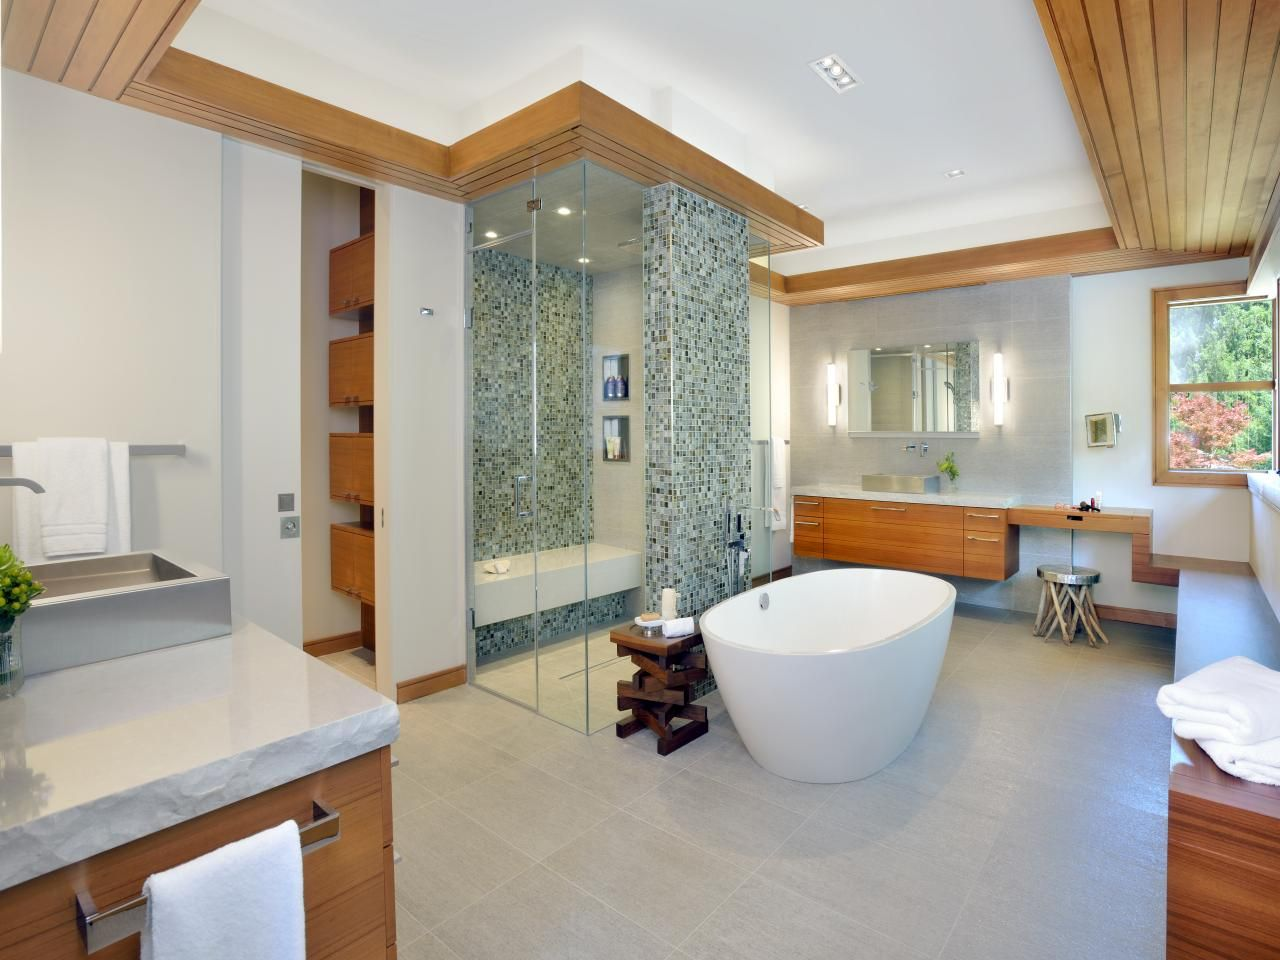 Best Master Bathroom Designs Best Working From The Architectural Plans For A Yet To Be Constructed Design Inspiration